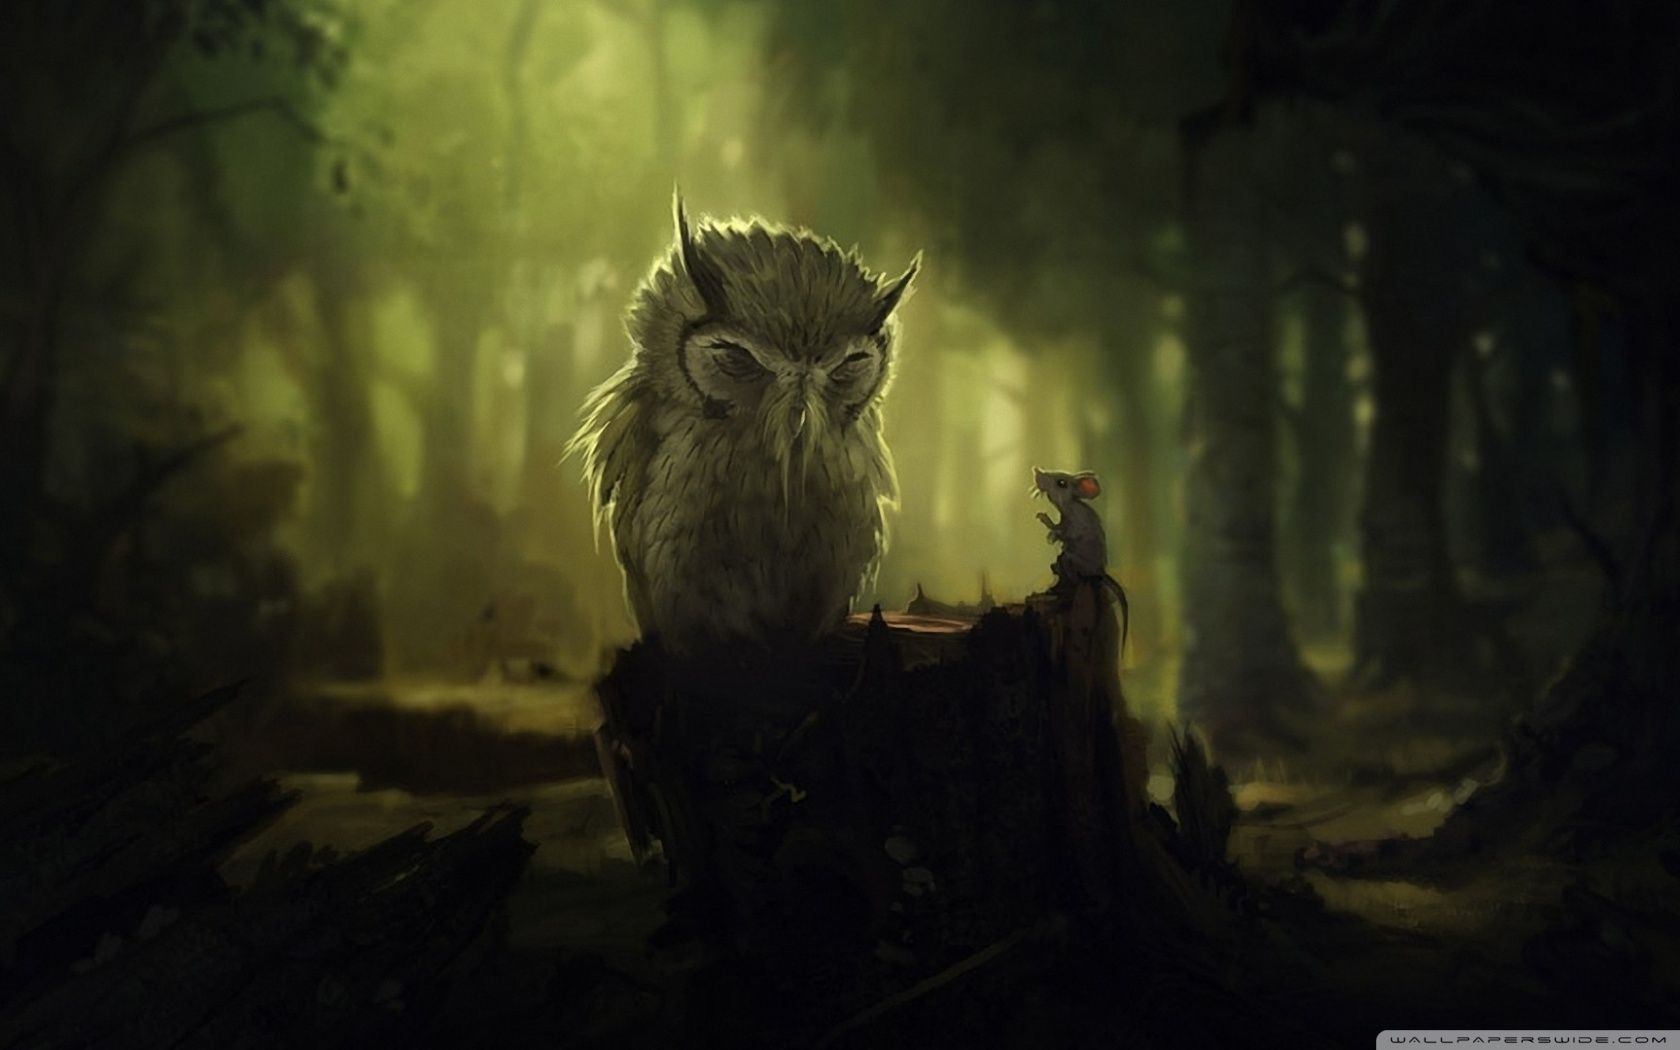 1680x1050 Fantasy Owl Wallpapers and Background Images - stmed.net